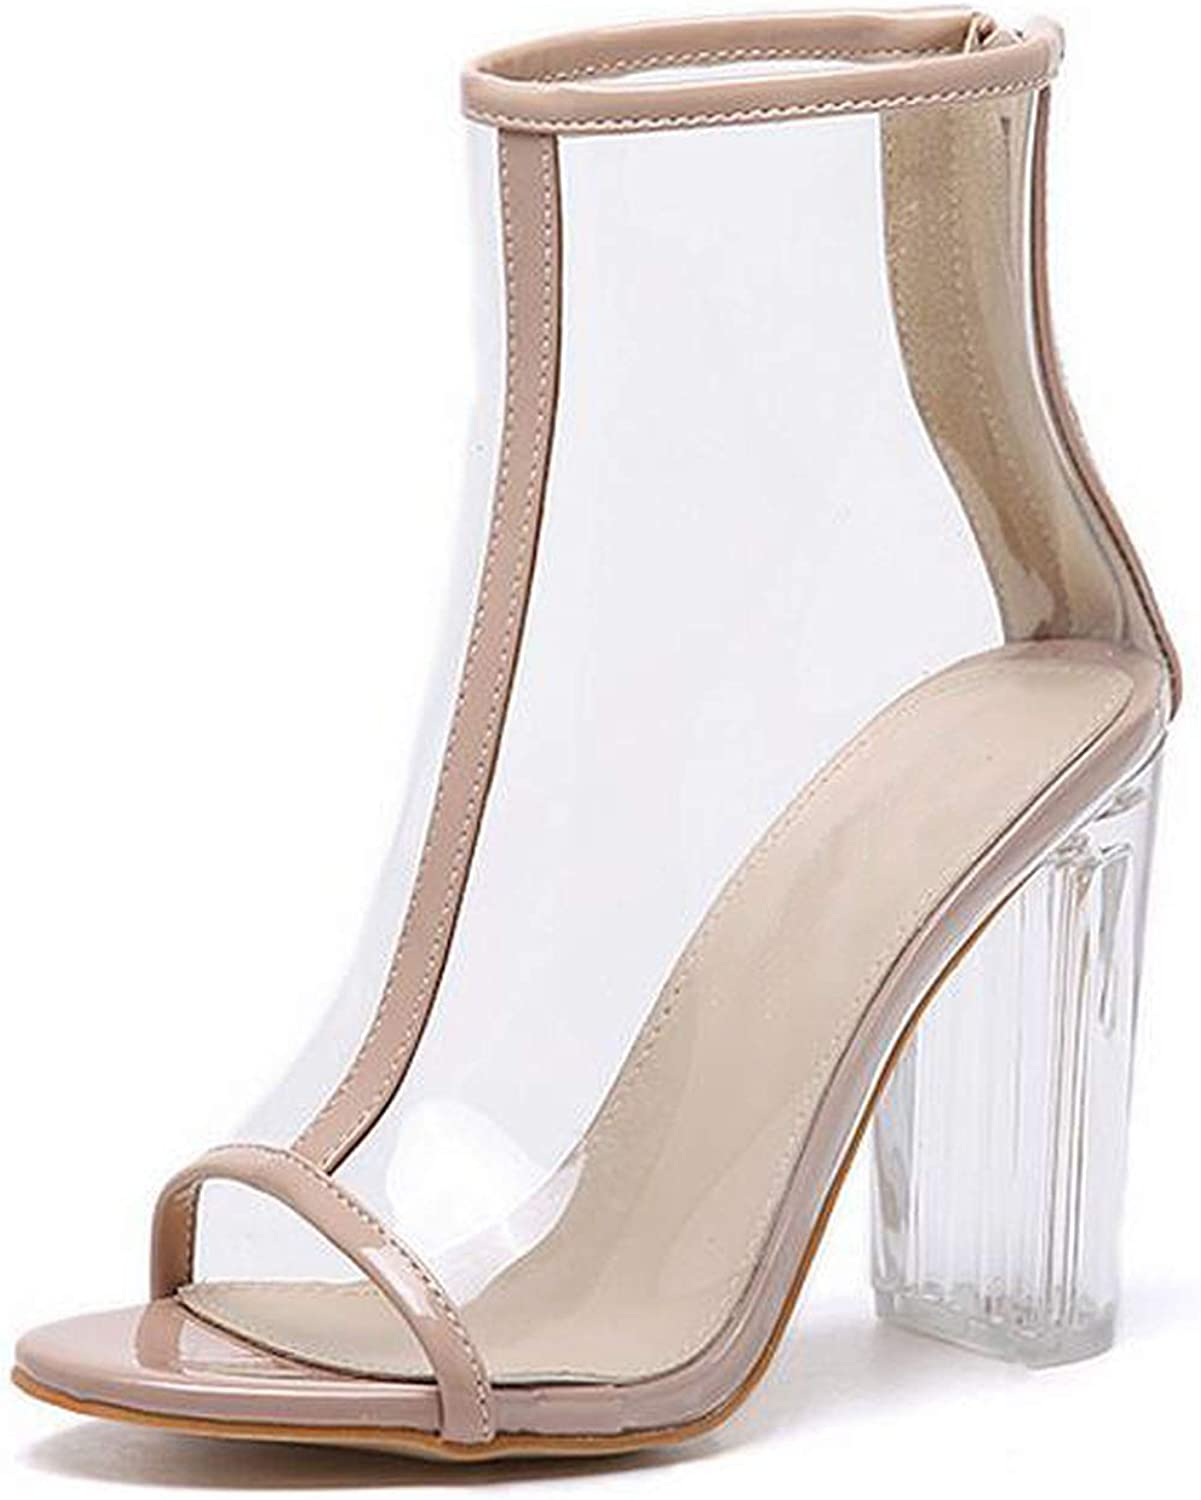 IOJHOIJOIJOIJMO Sexy PVC Transparent Boots Sandals Peep Toe shoes Clear Chunky Heels Sandals Women Boots 11Cm